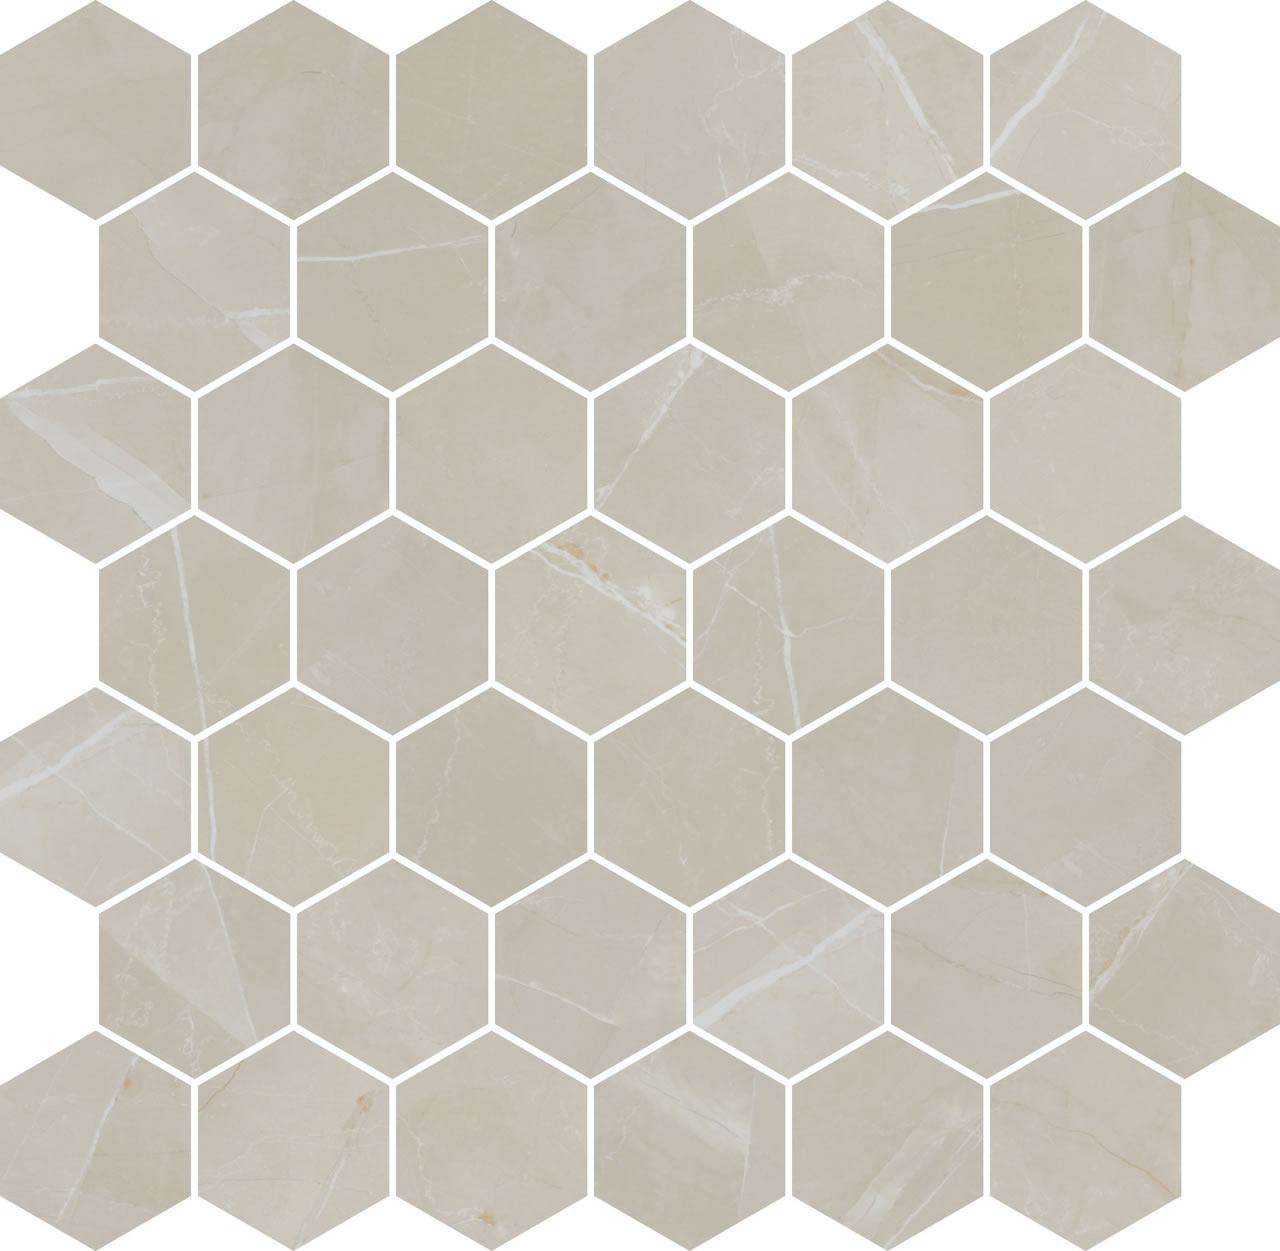 Pulpis 3000 hex cream t-po 30×30